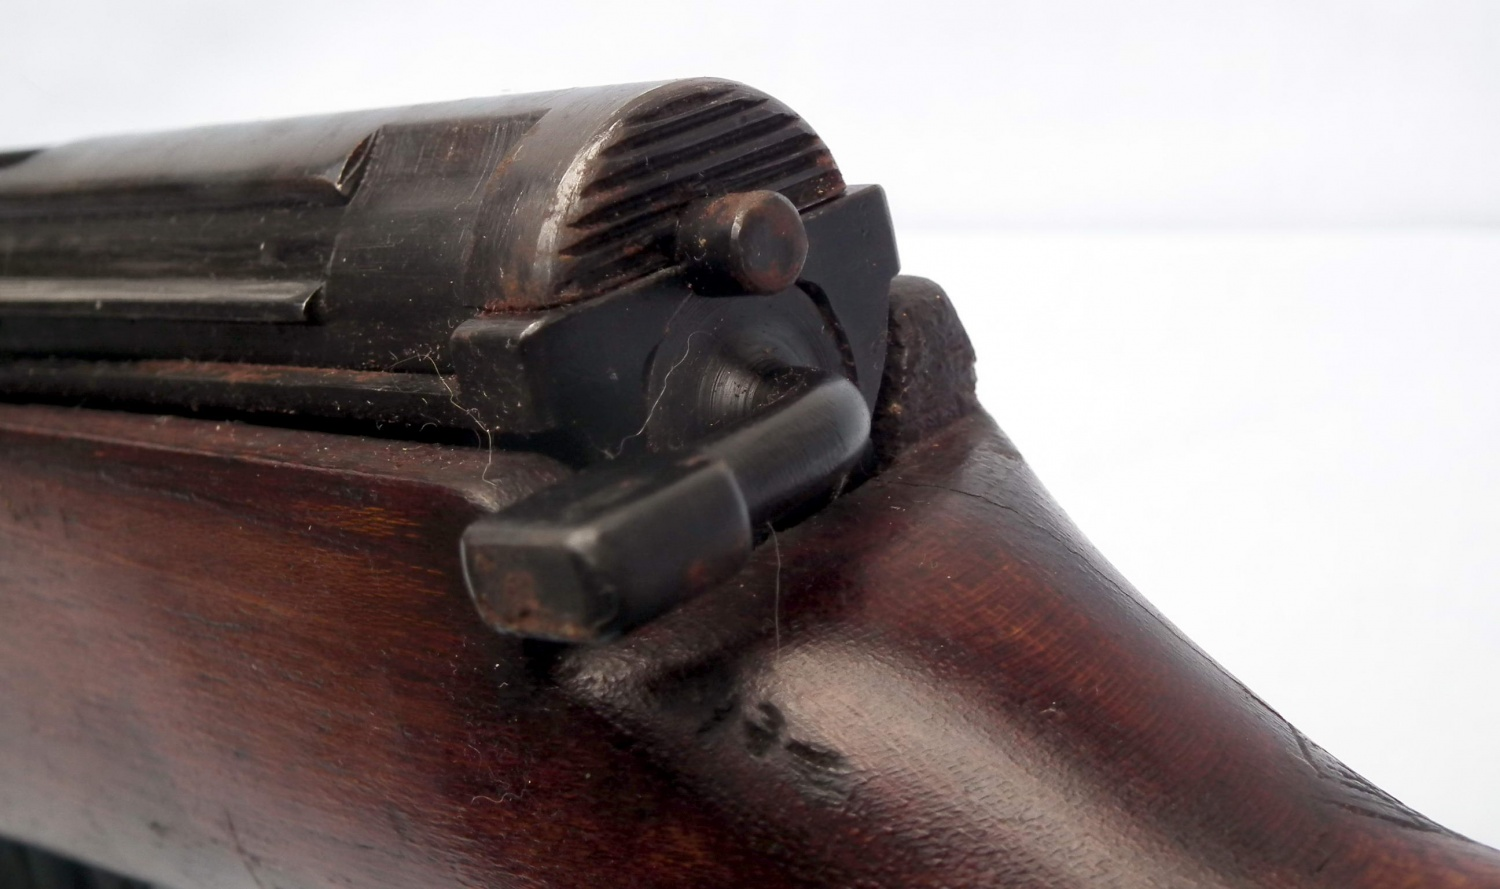 Seen from the rear, the rifle's bolt housing, and the applied safety lever.